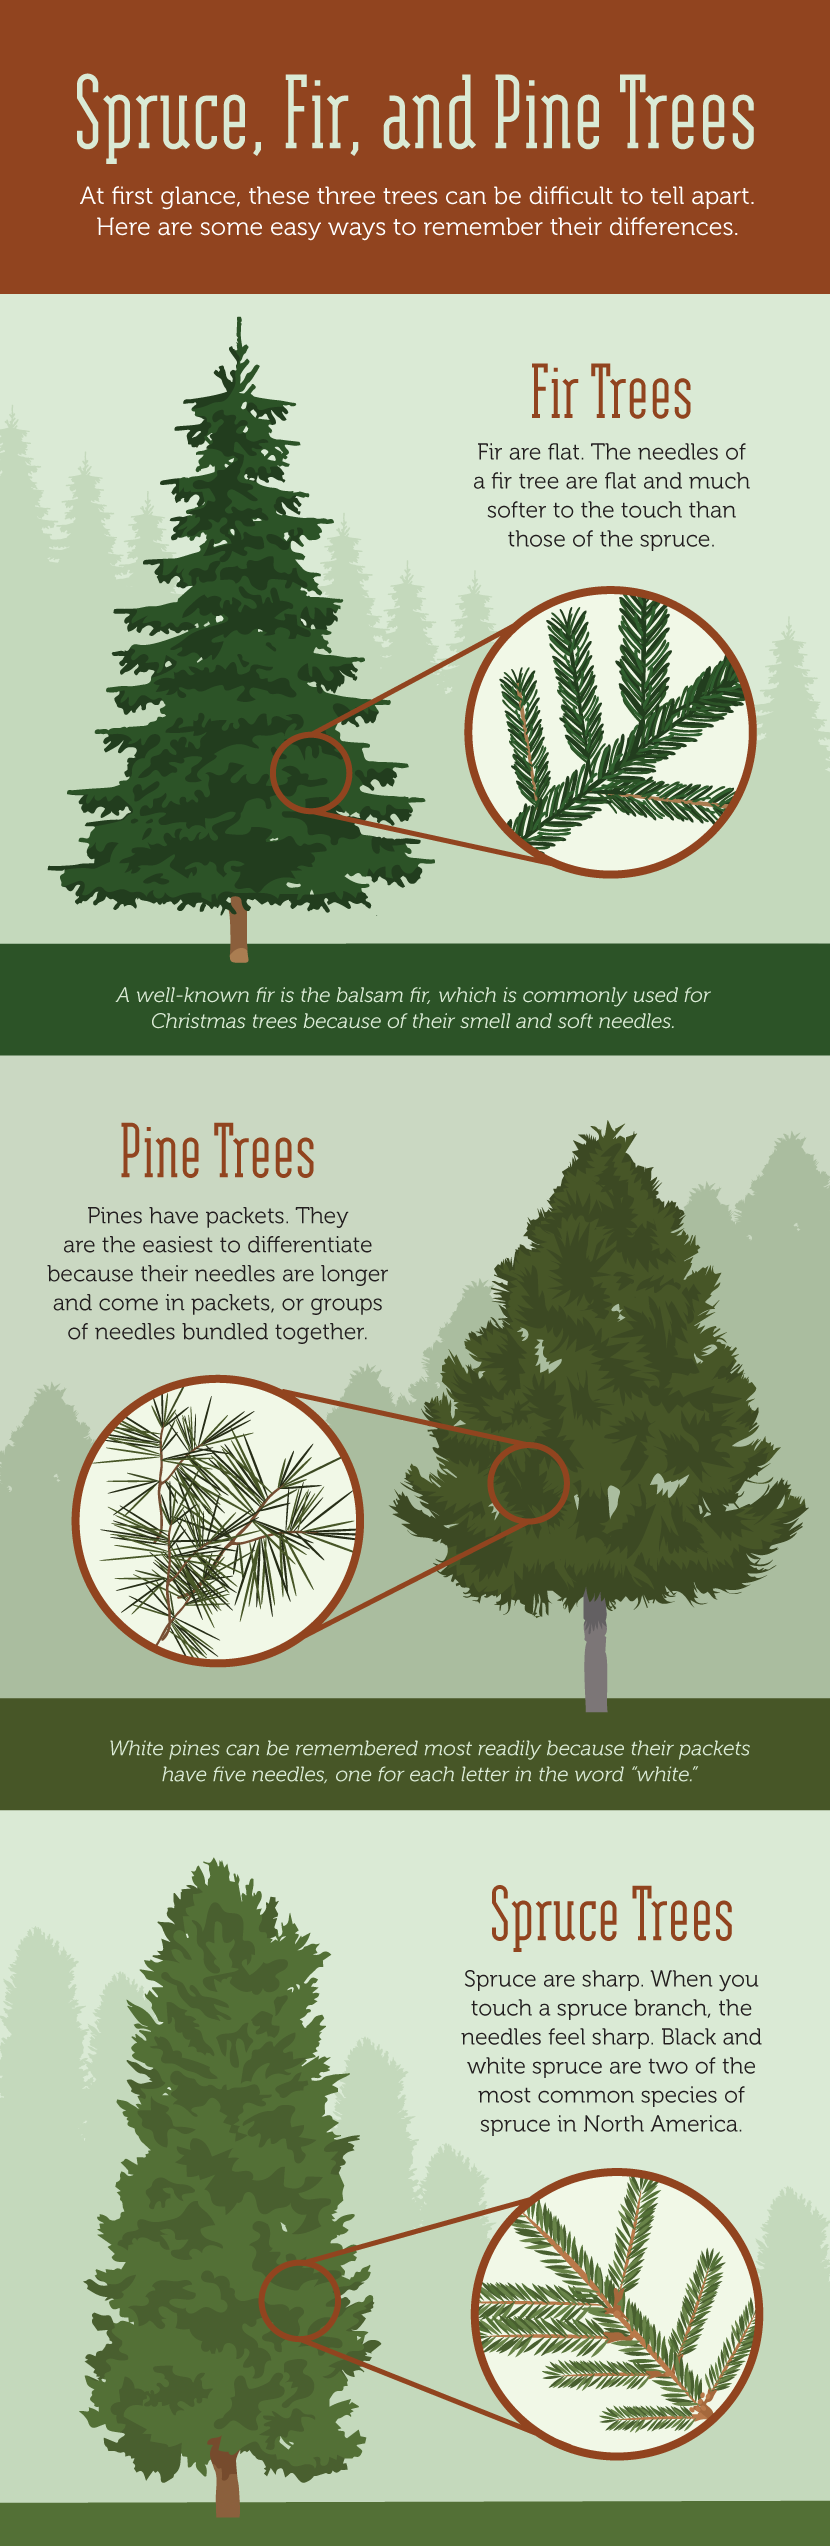 Spruce, Fir, and Pine - Learning to Read the Forest